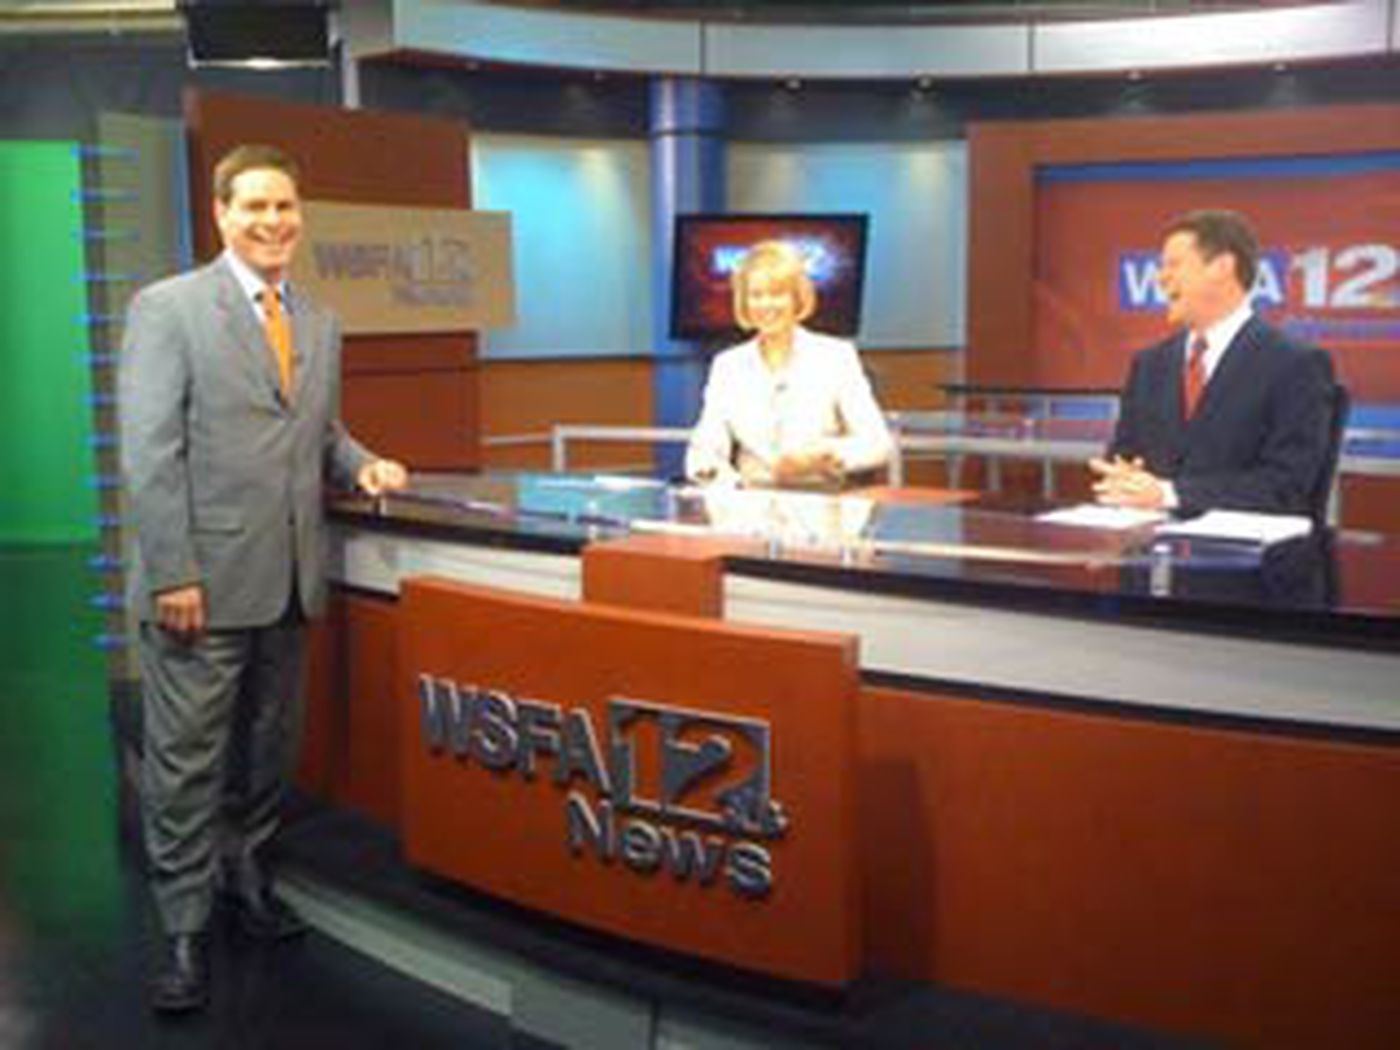 Kim Hendrix to leave WSFA 12 News after 20 years